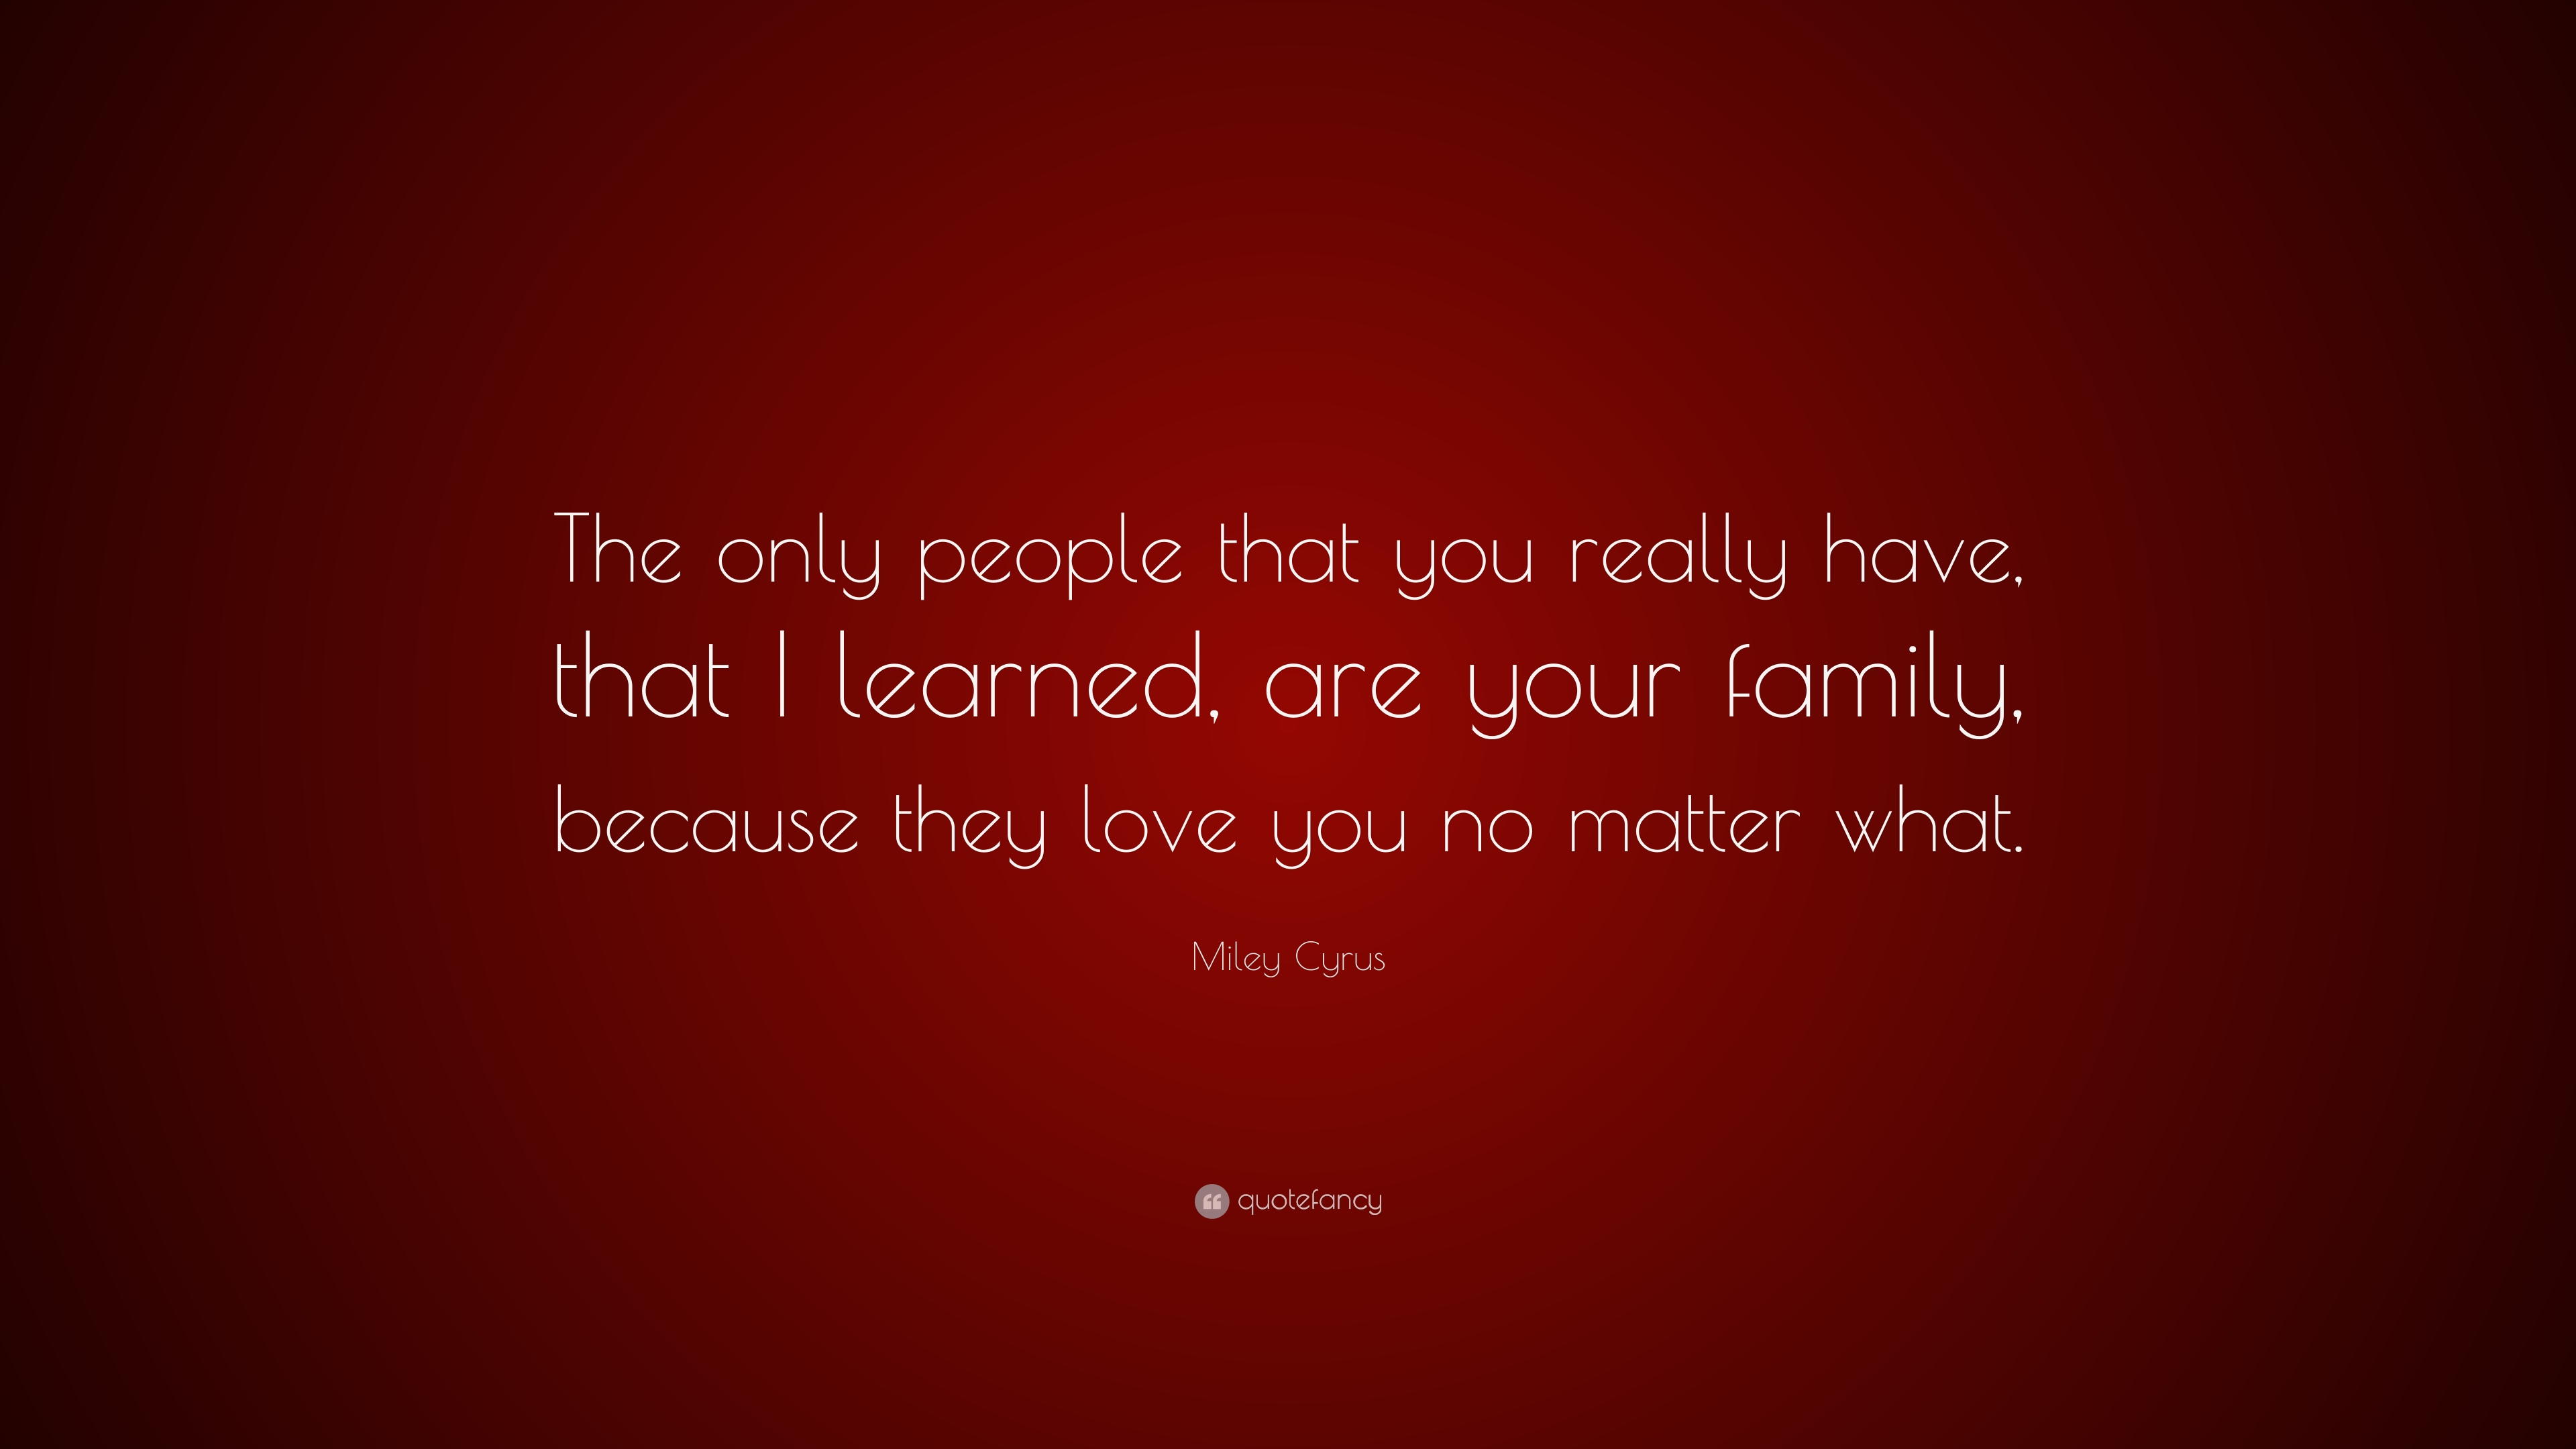 Miley Cyrus Quote The Only People That You Really Have That I